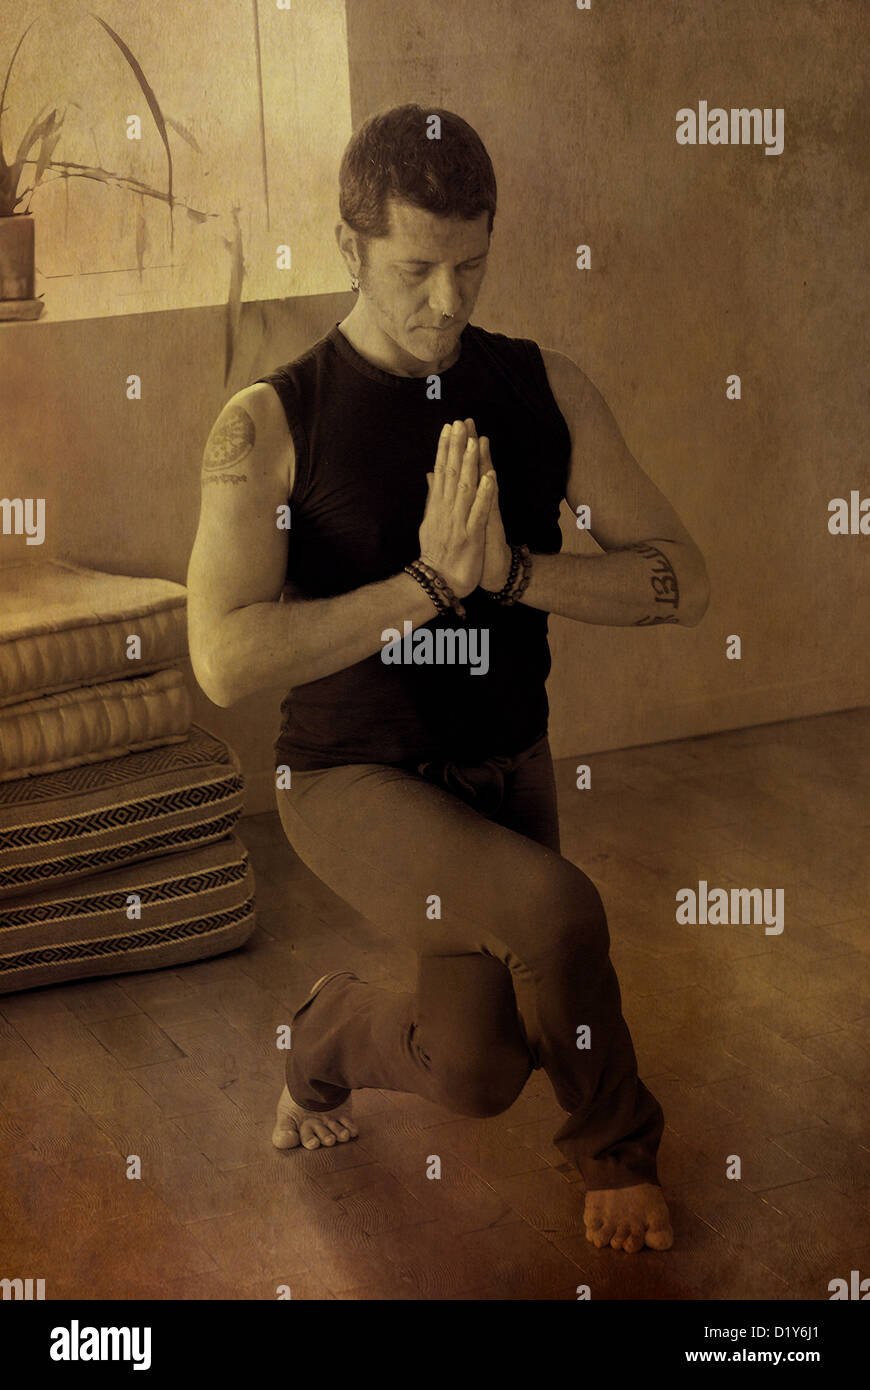 Man in a deep eagle leg squat holding his hands in prayer pose. - Stock Image